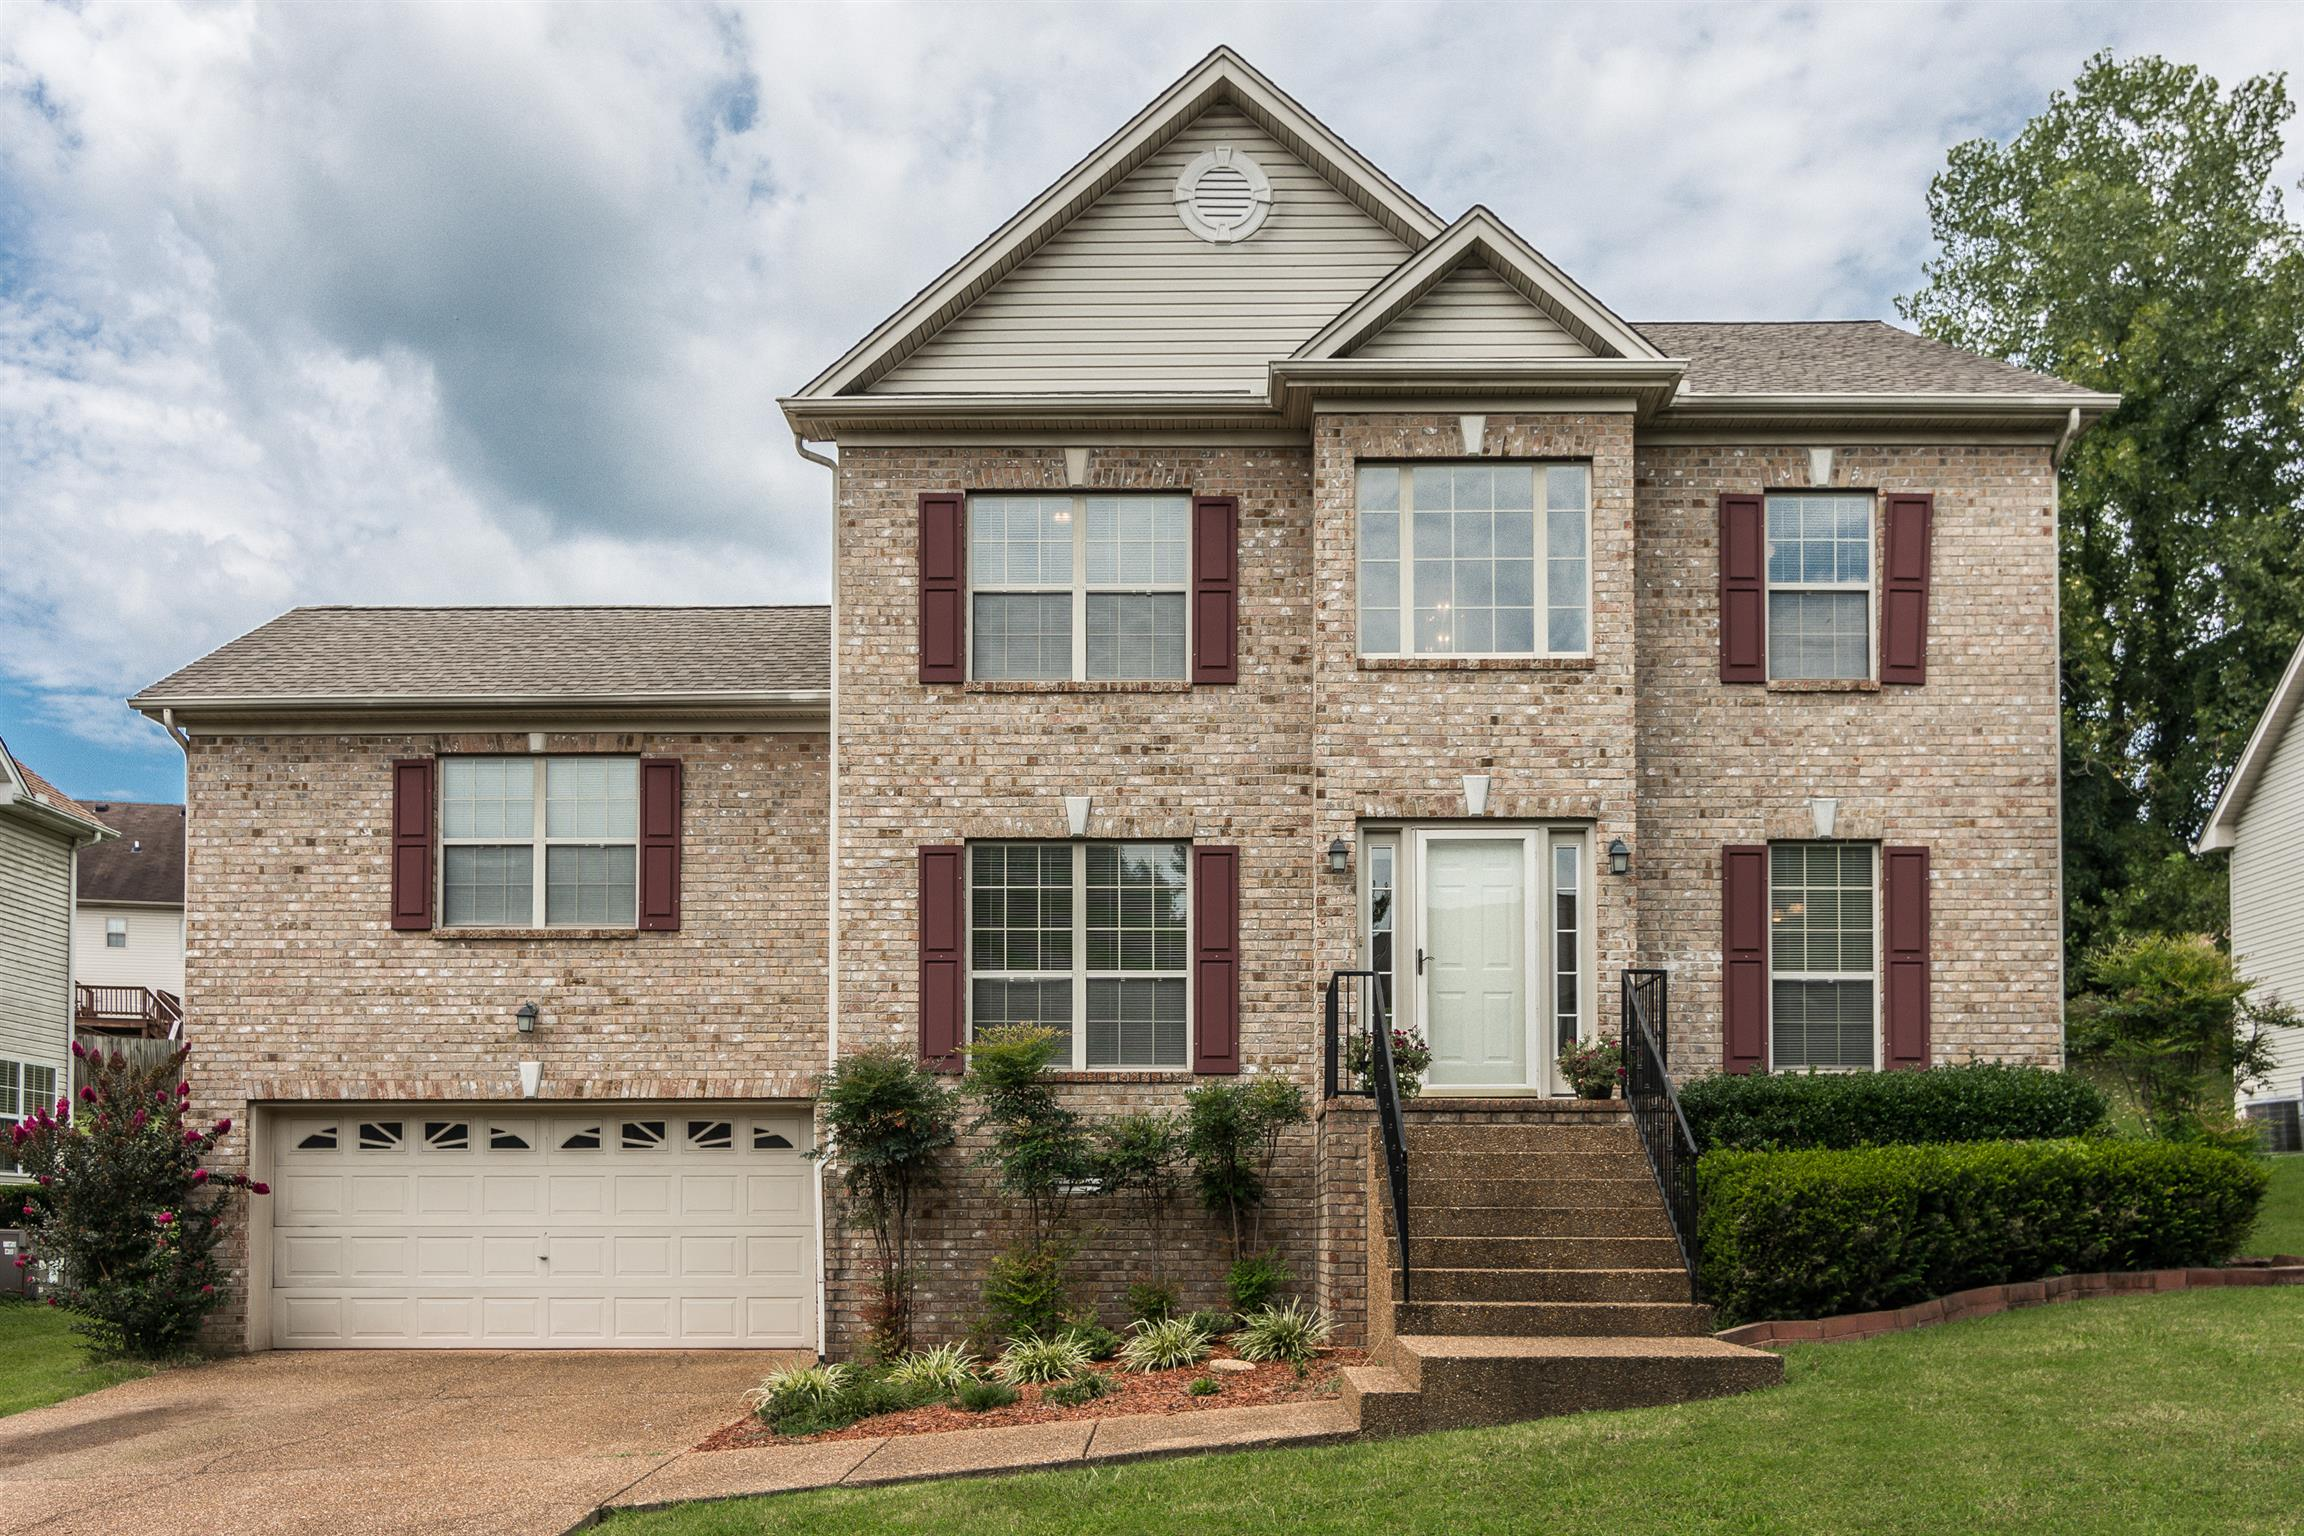 110 Marshall Greene Cir, Goodlettsville, TN 37072 - Goodlettsville, TN real estate listing